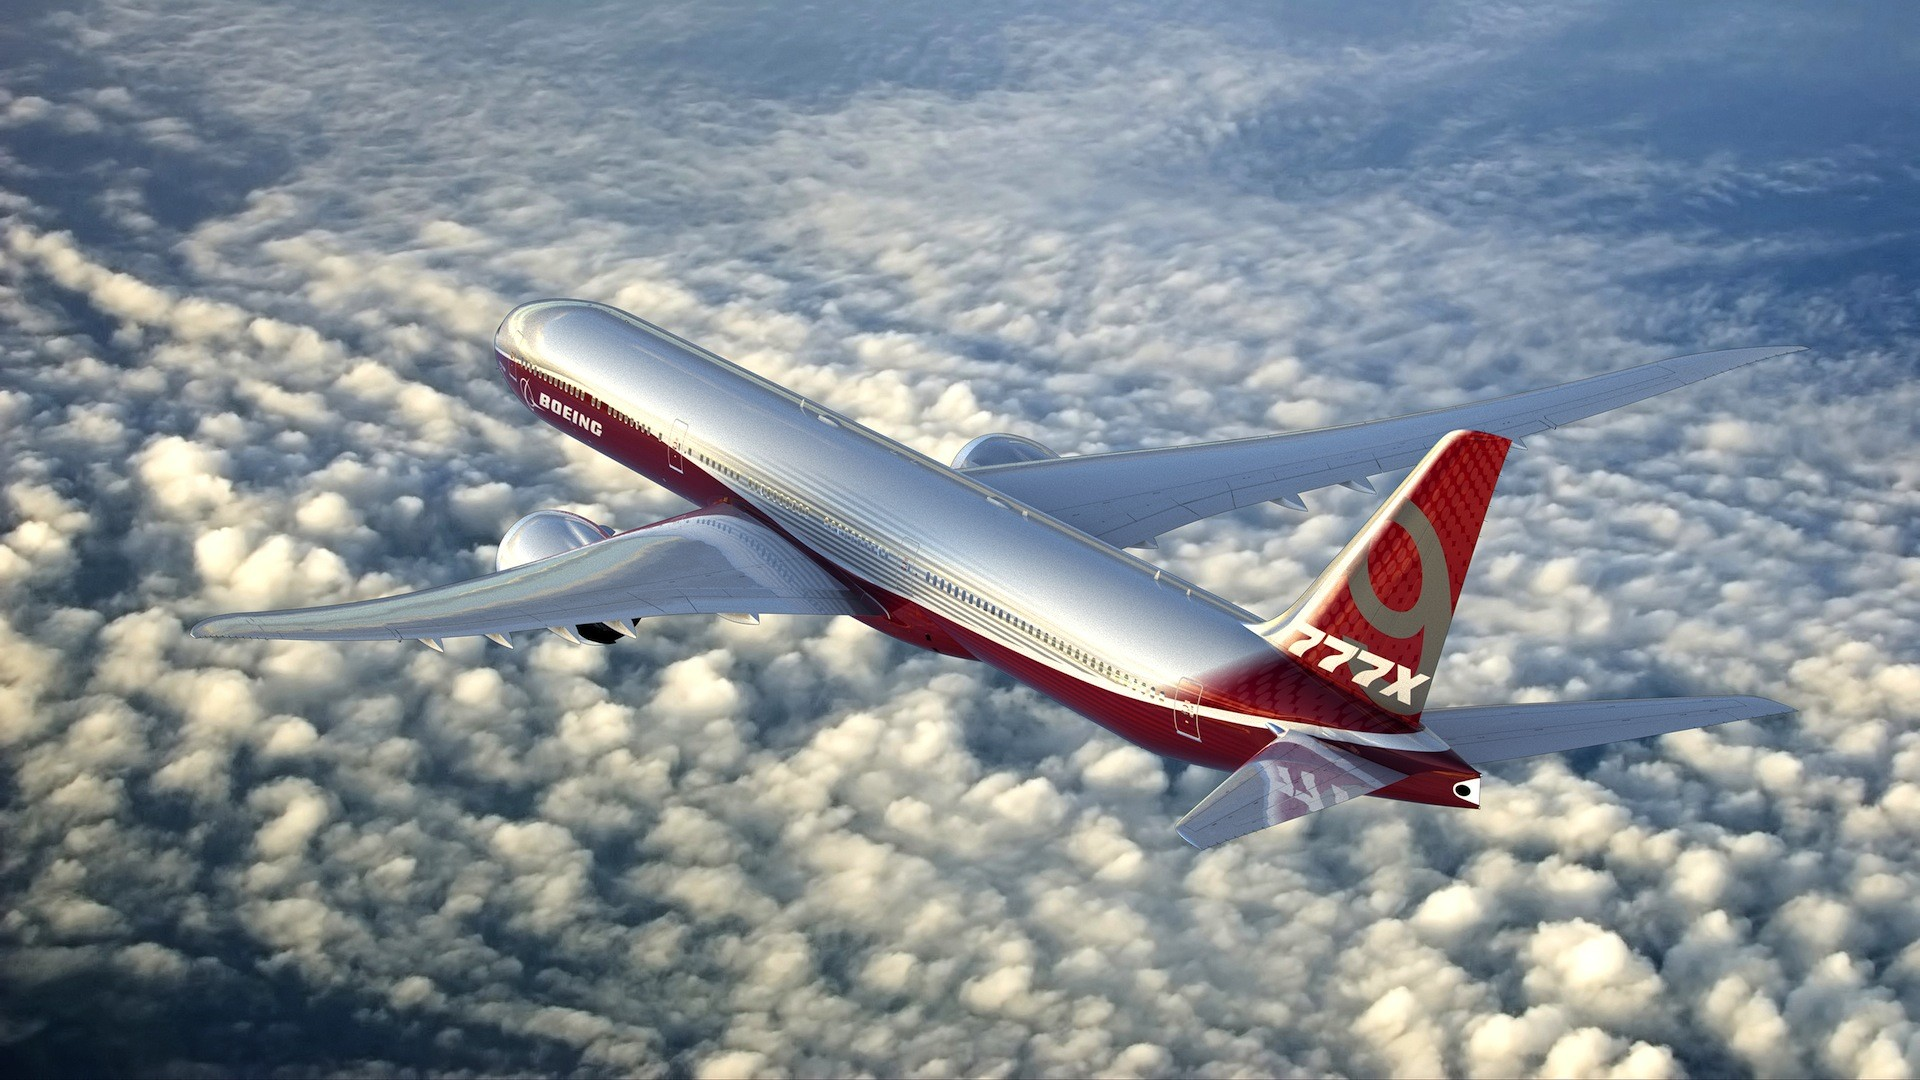 Boeing 777 Wallpaper Hd 66 Images